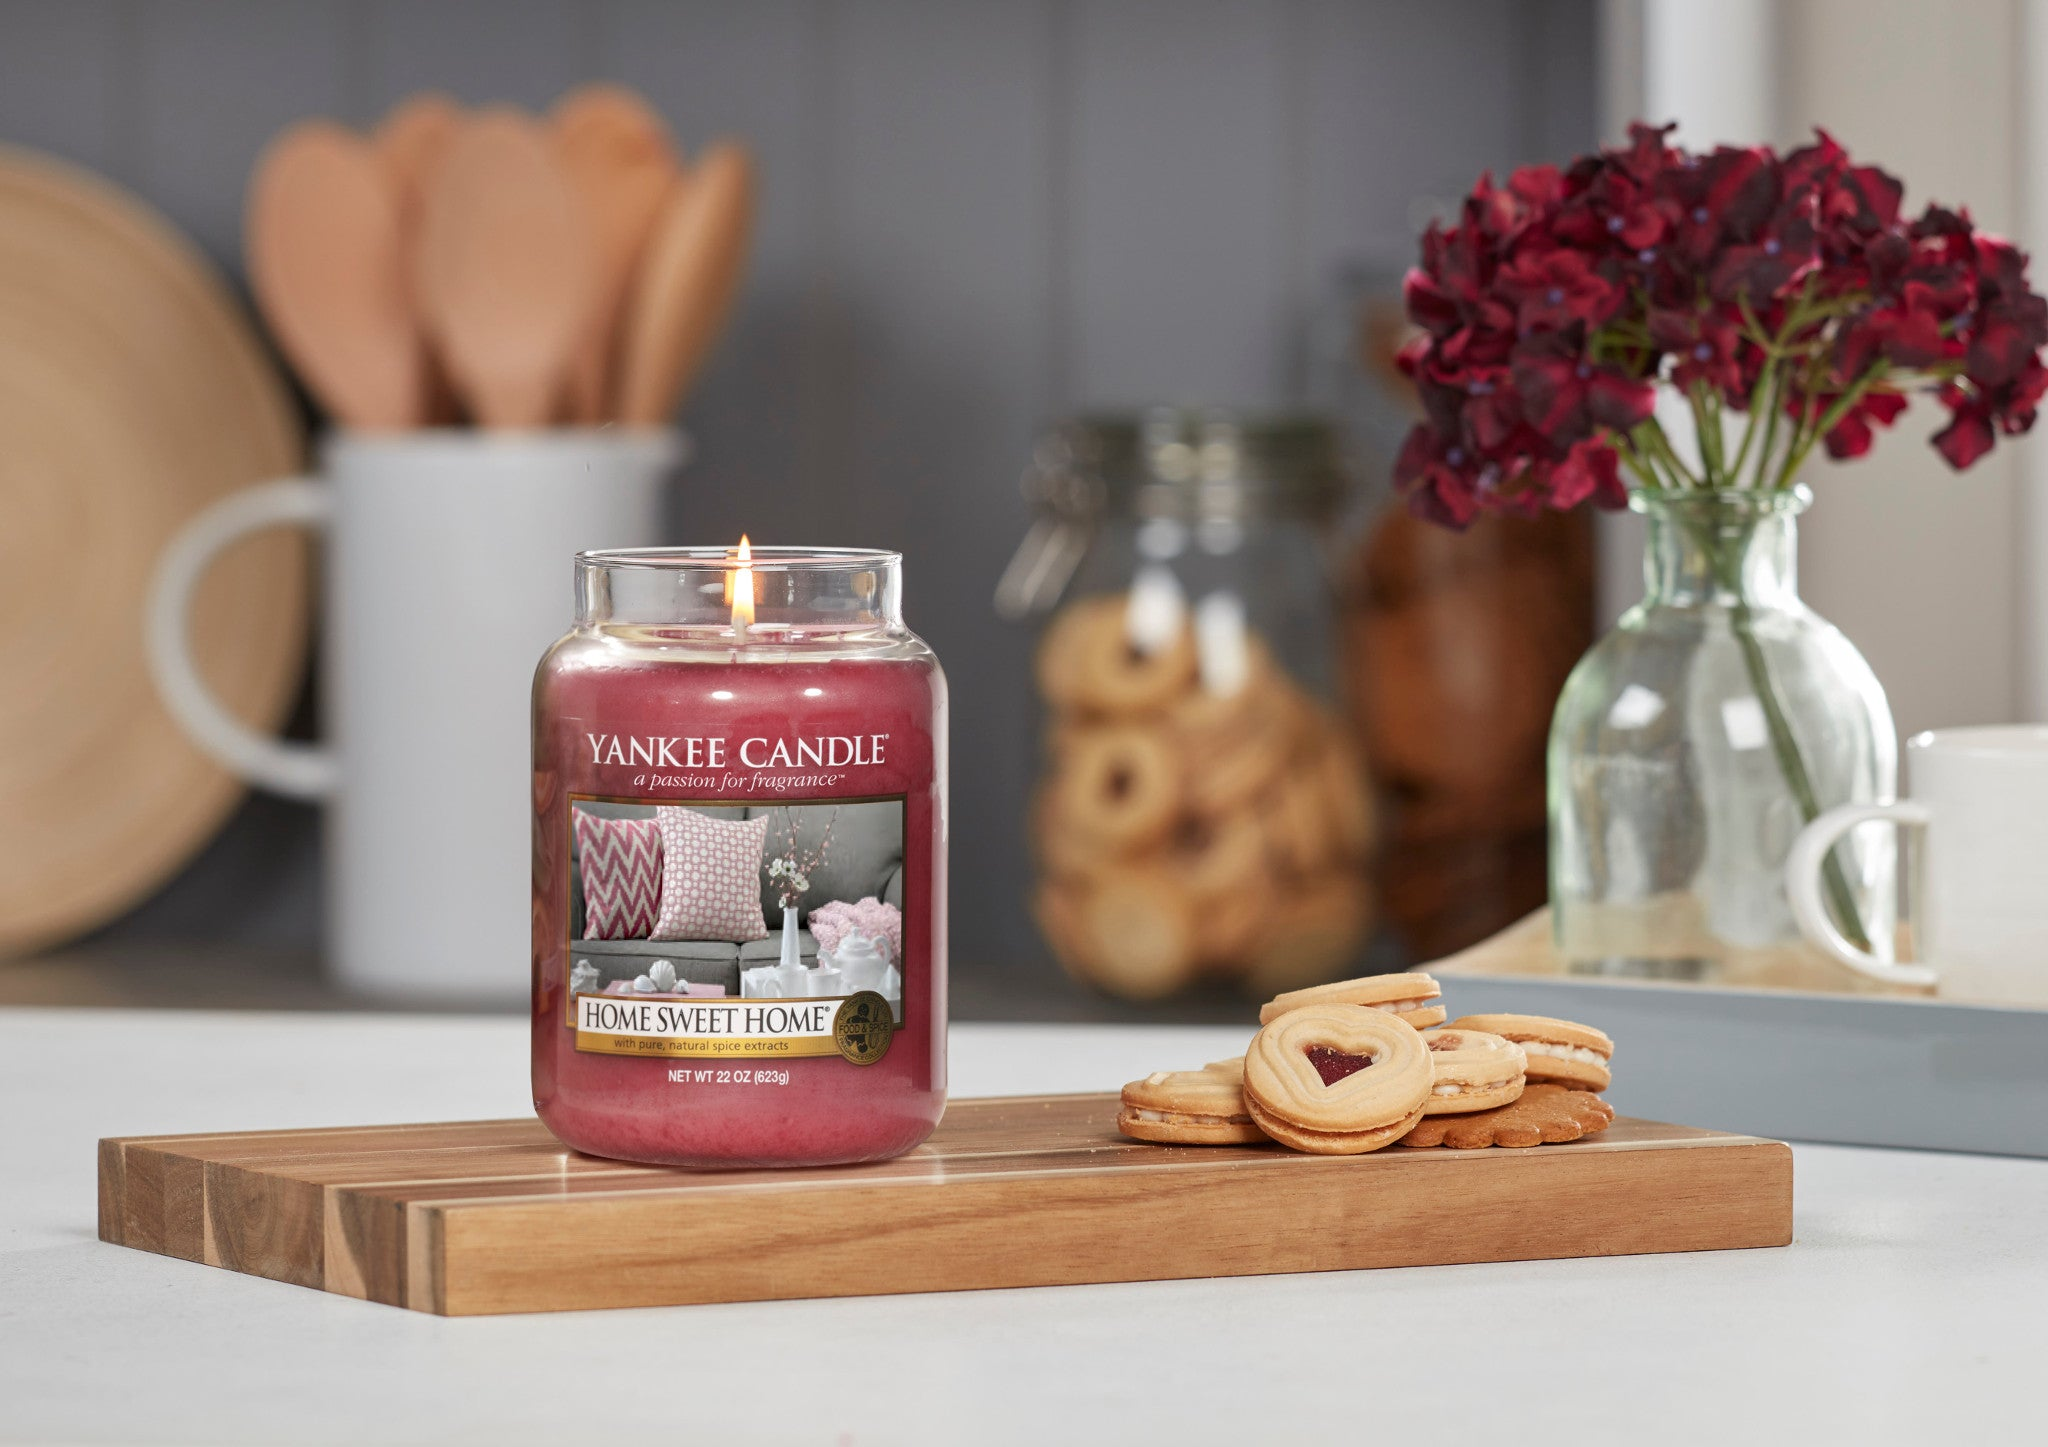 HOME SWEET HOME -Yankee Candle- Candela Sampler